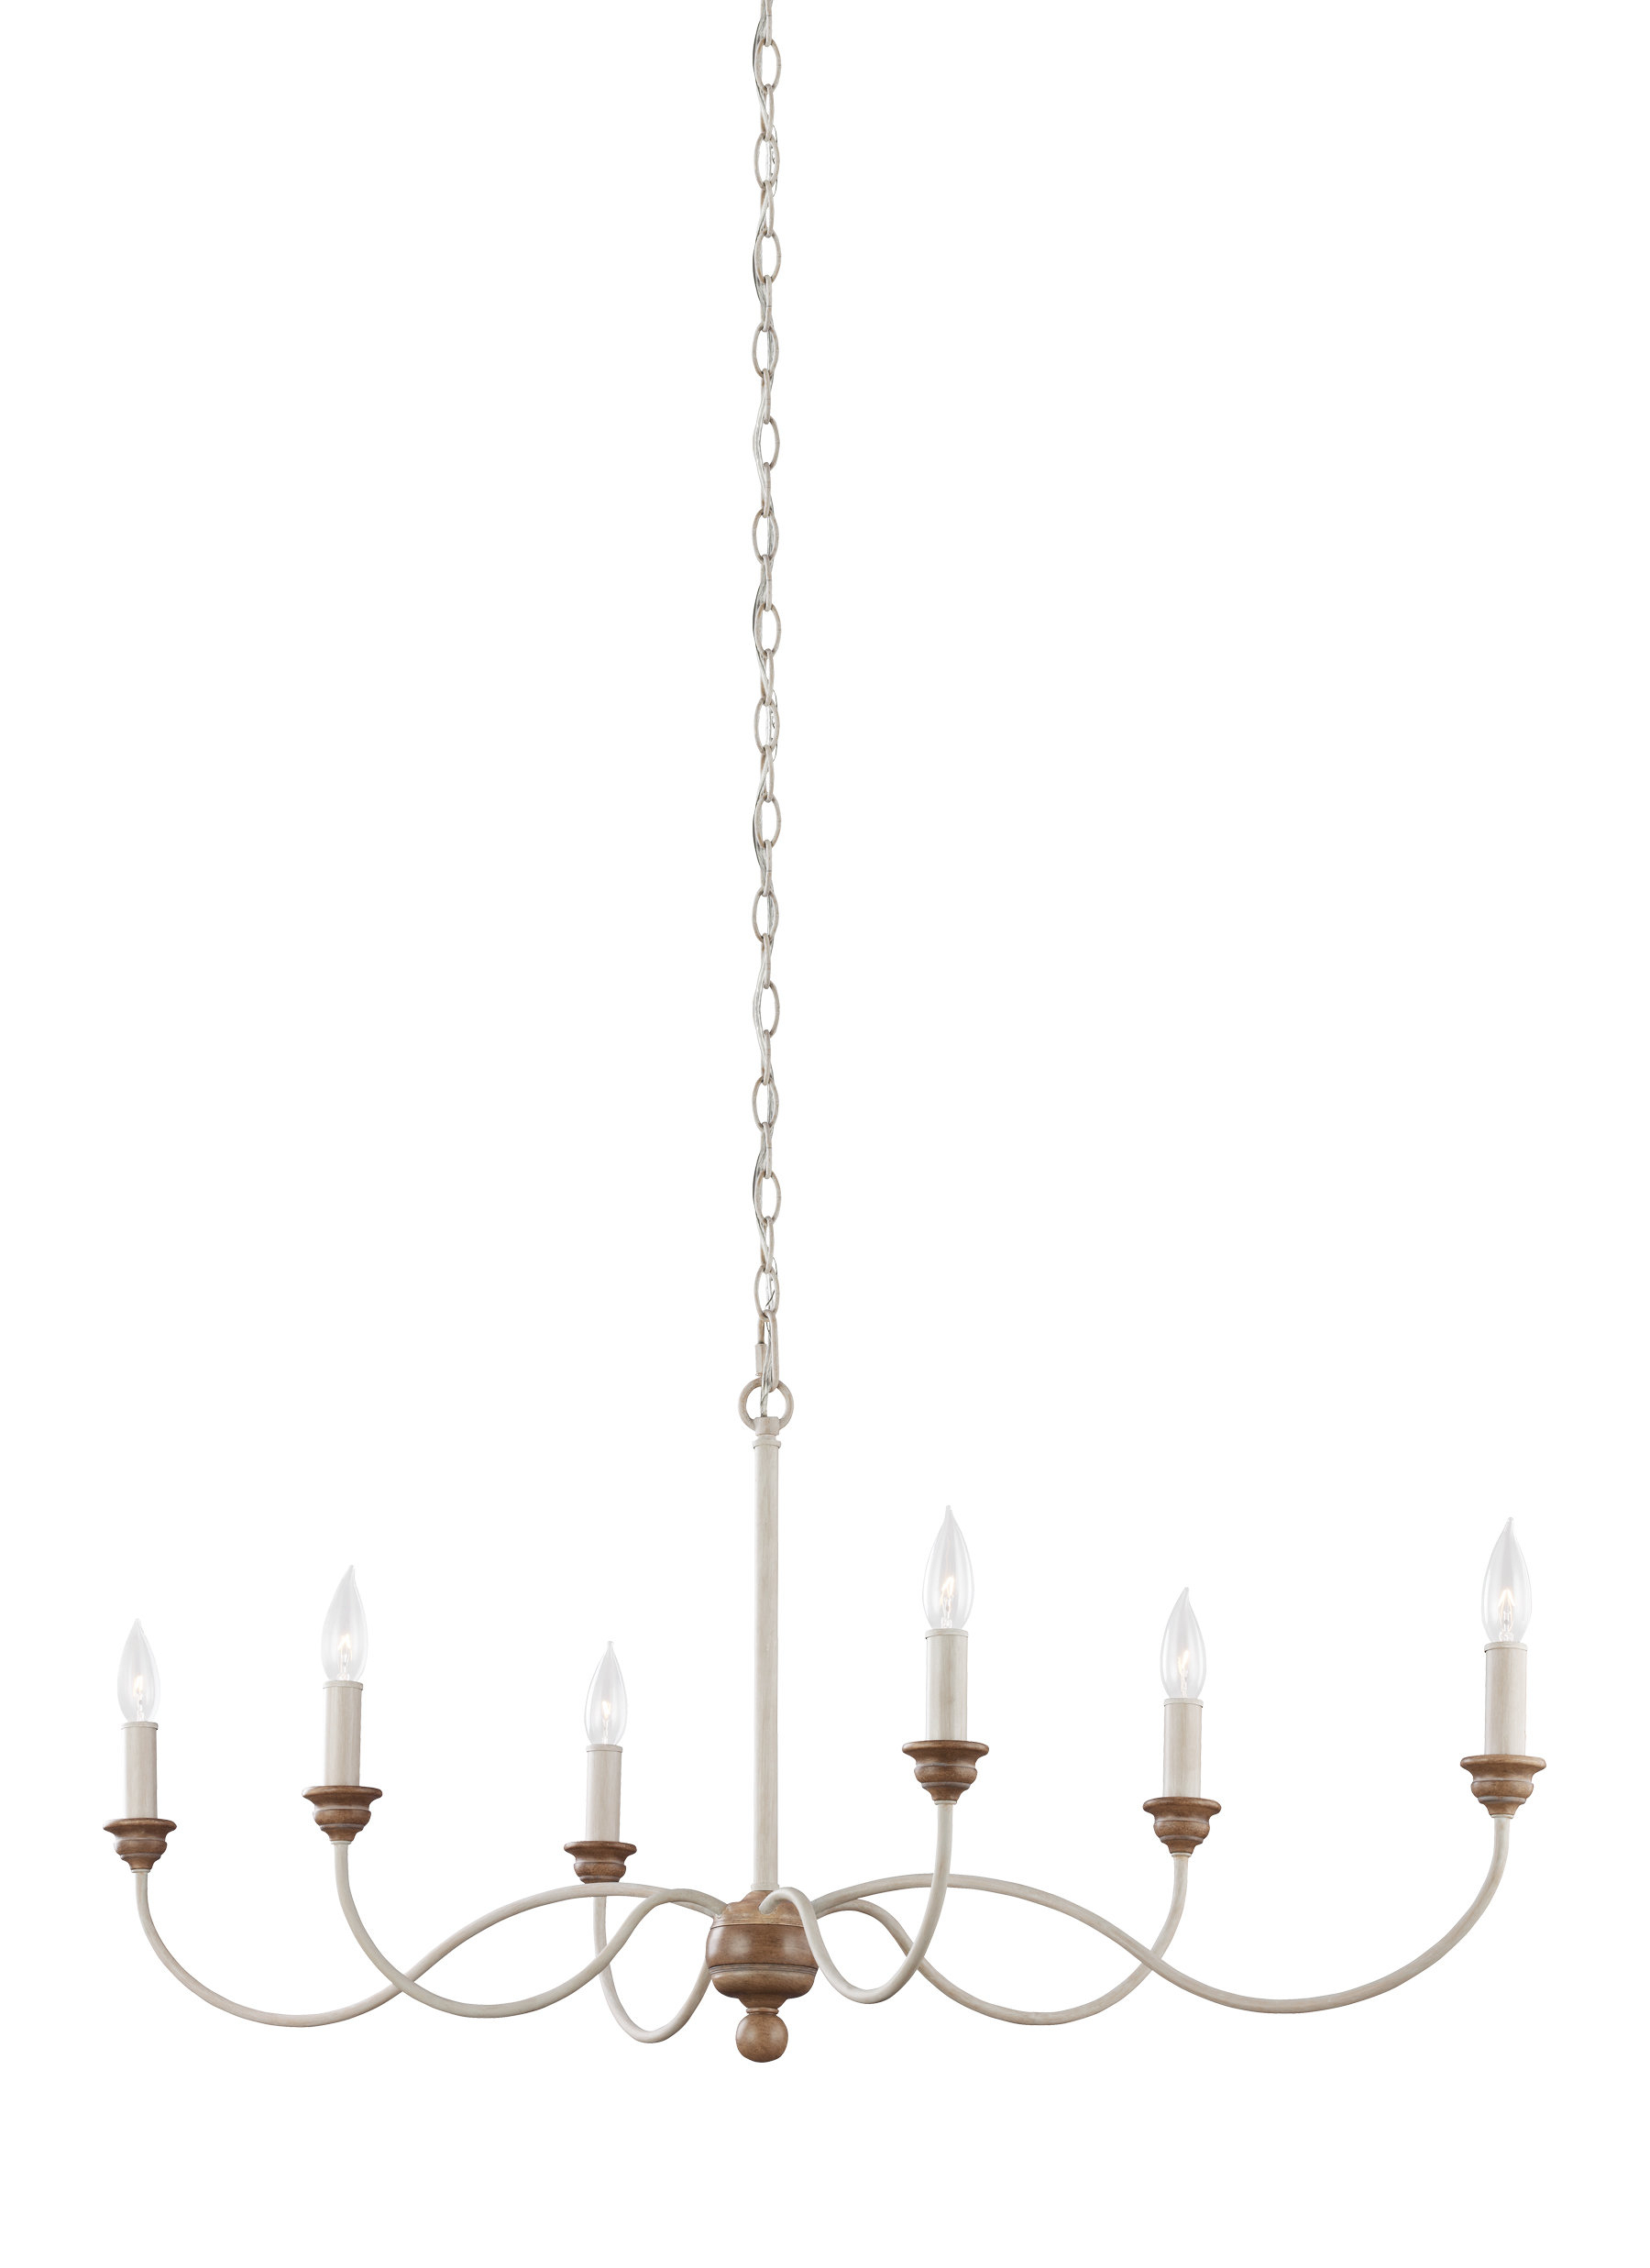 Sundberg 6 Light Candle Style Chandelier With Regard To Famous Shaylee 6 Light Candle Style Chandeliers (View 15 of 25)